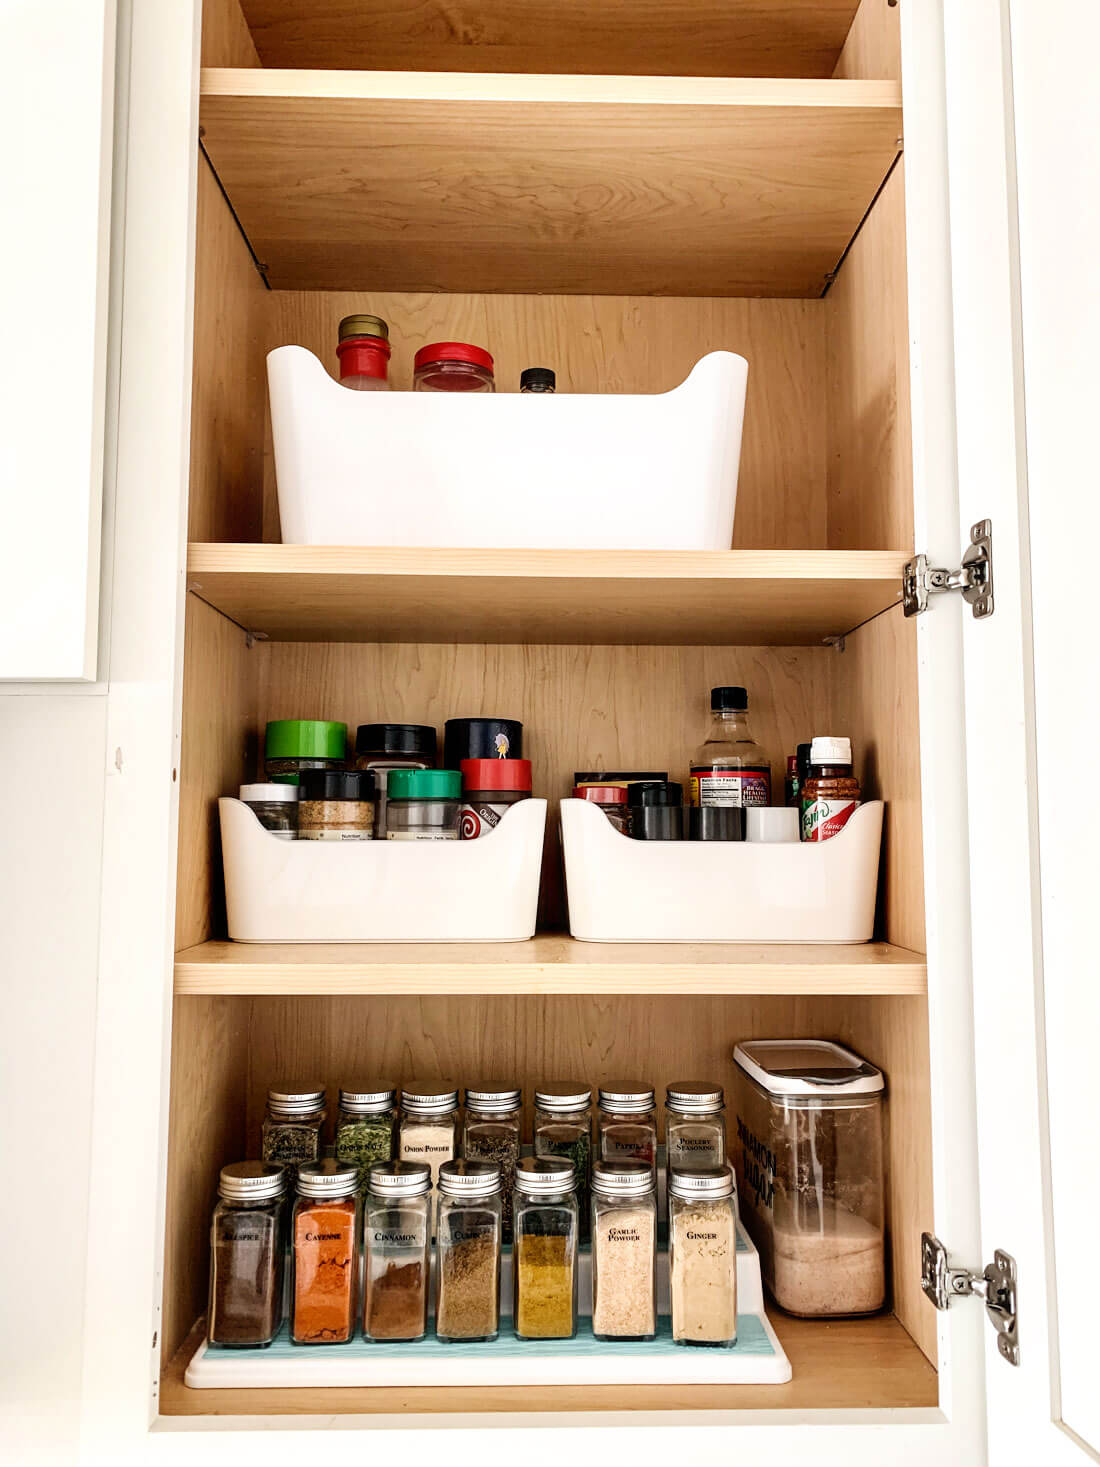 How to organize your spice rack - before adding vinyl to the containers.